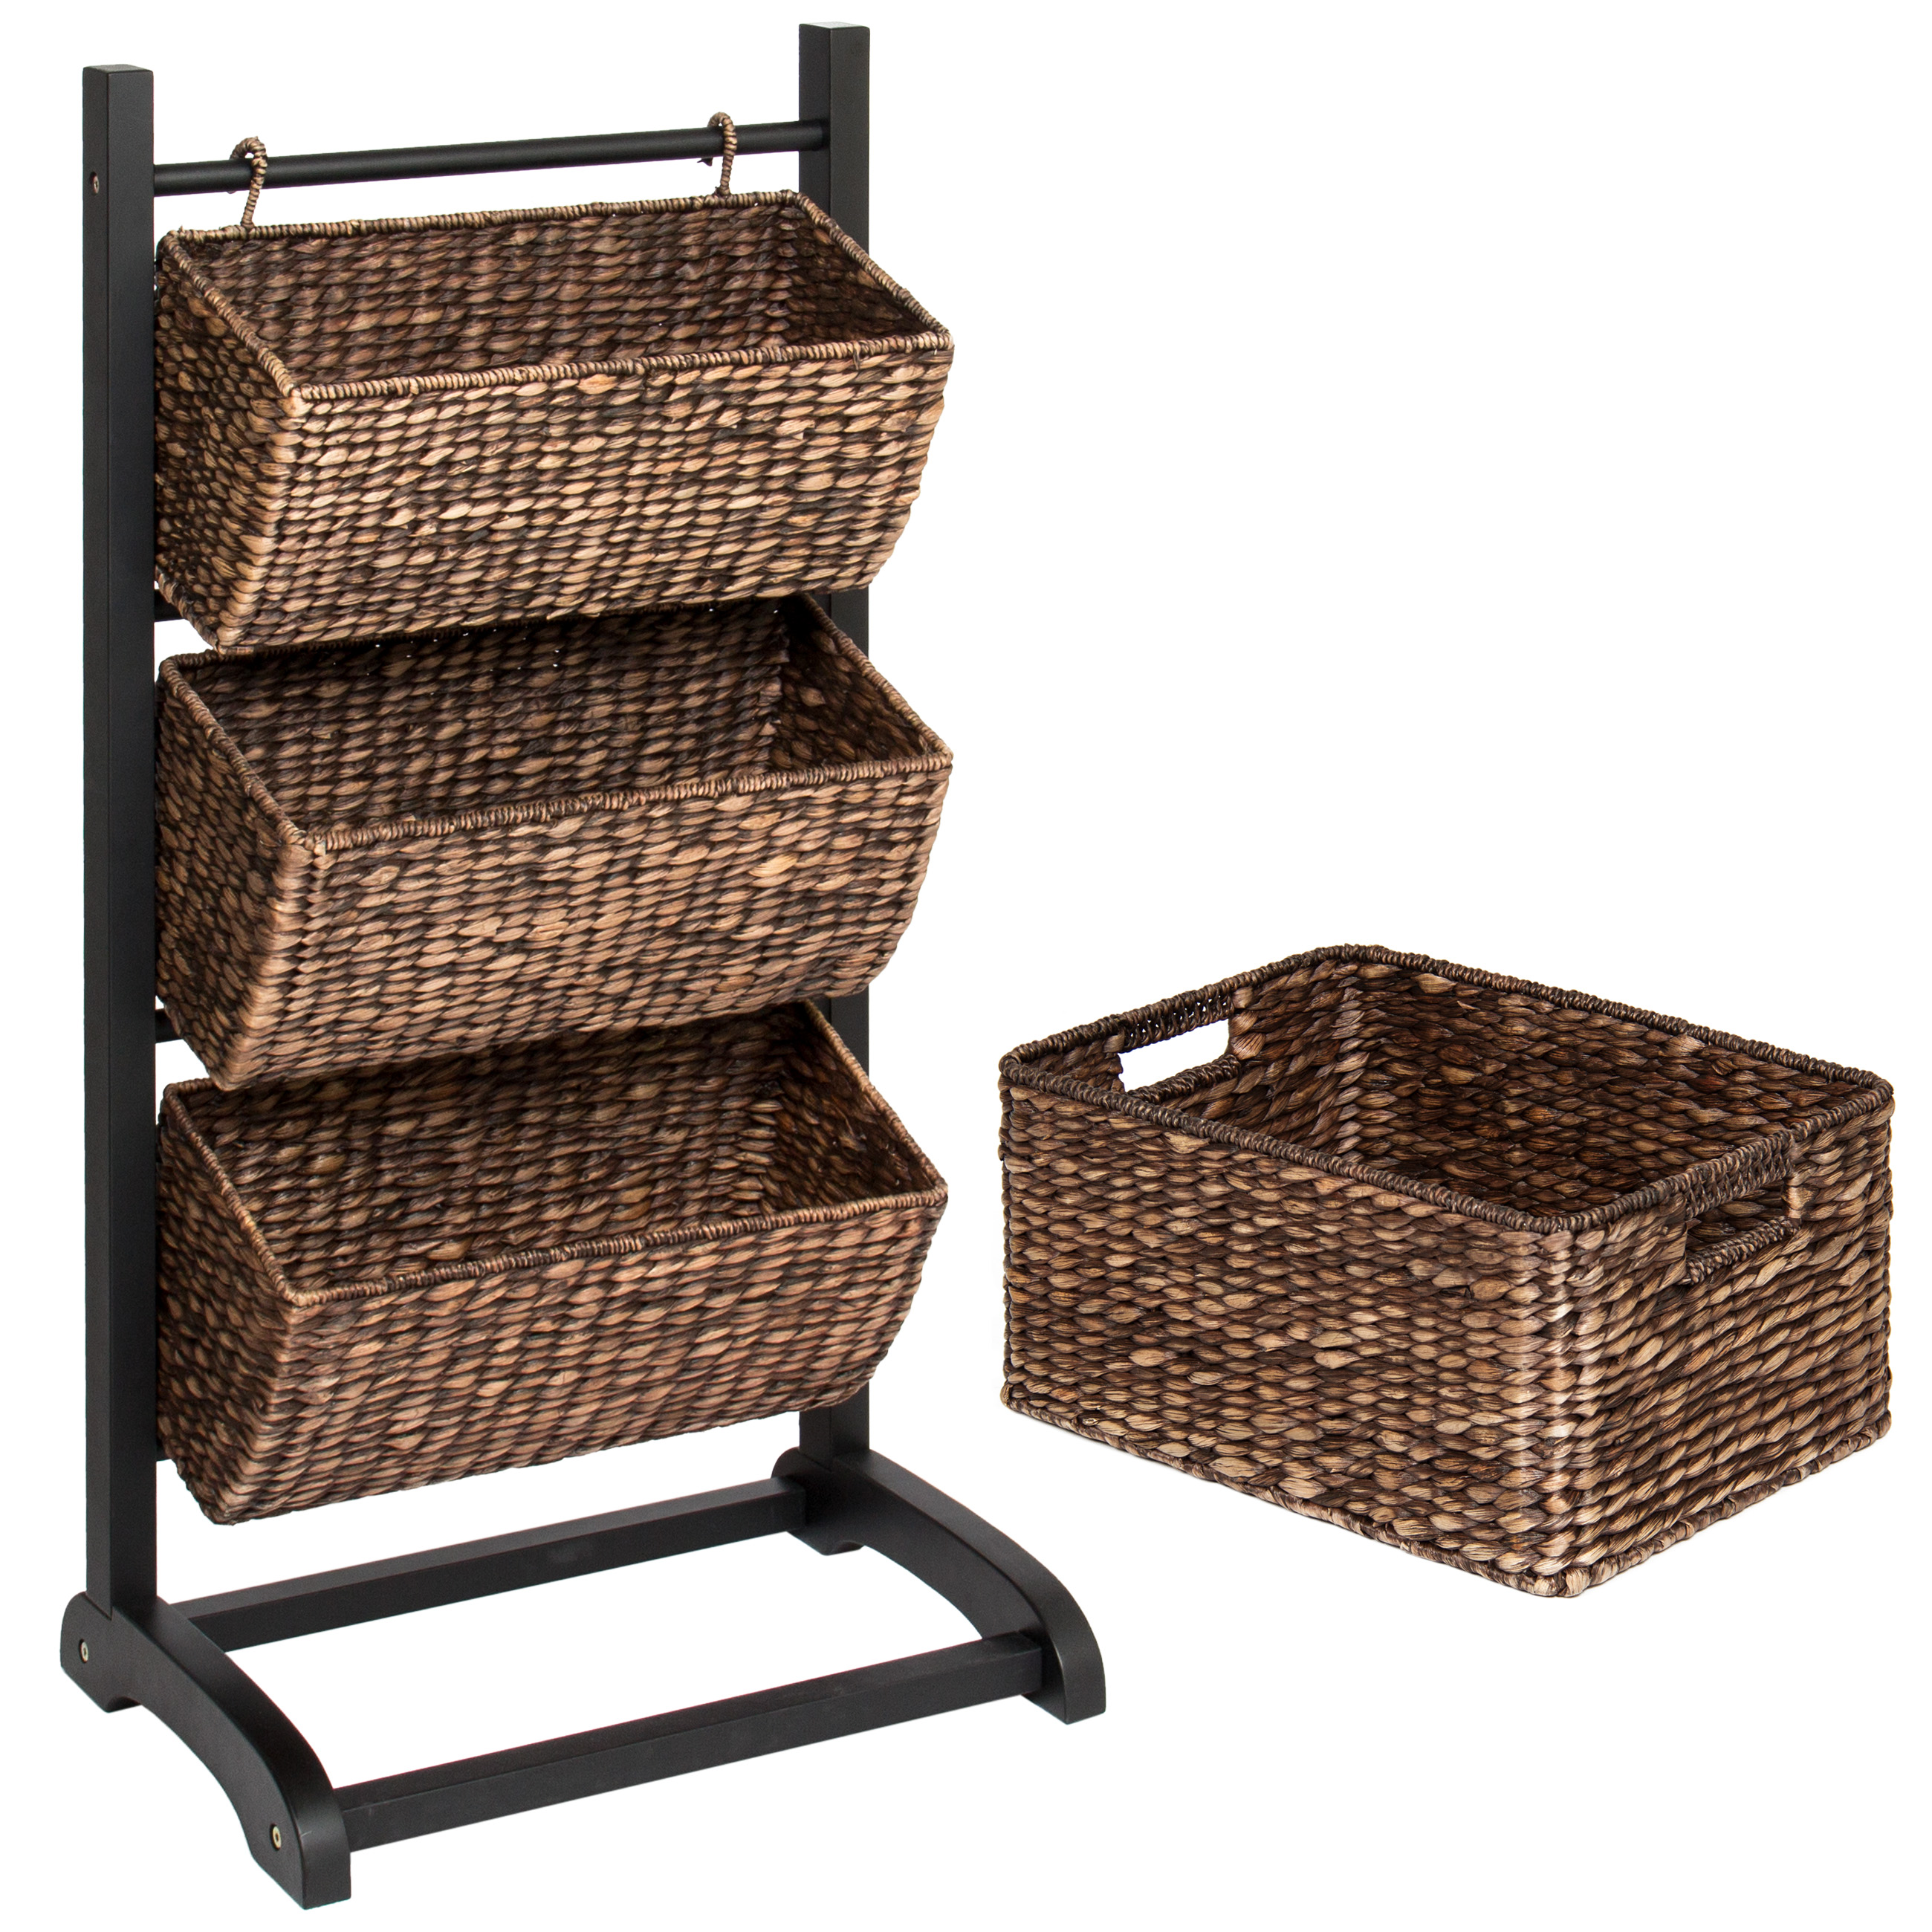 Best Choice Products 3-Tier Water Hyacinth Storage Basket Tower Shelving Cubby Display Organizer w/ Metal Frame - Brown